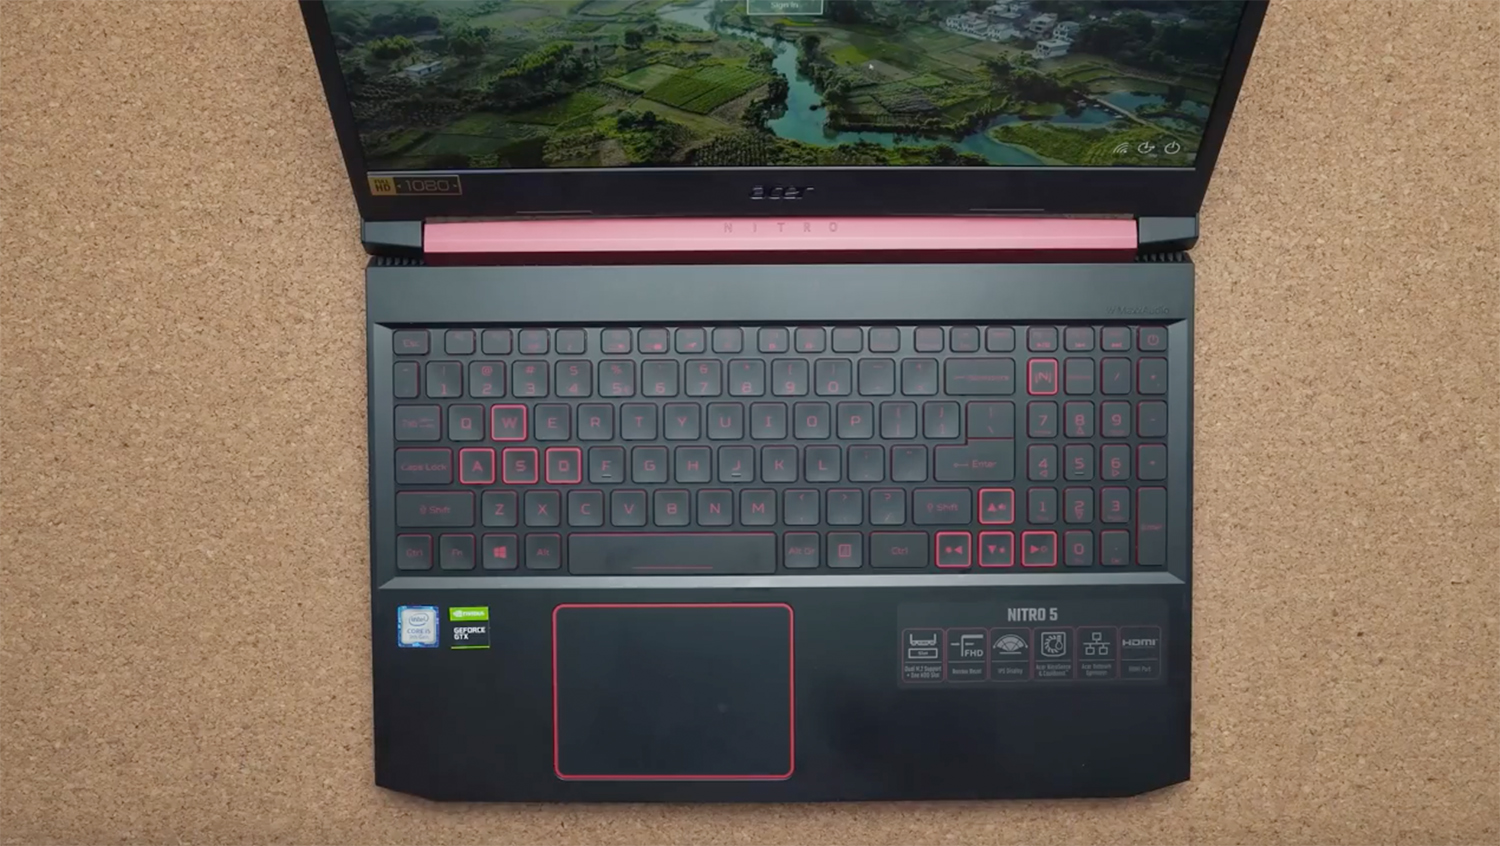 Analysis: Acer Nitro 5 - Buy Manual